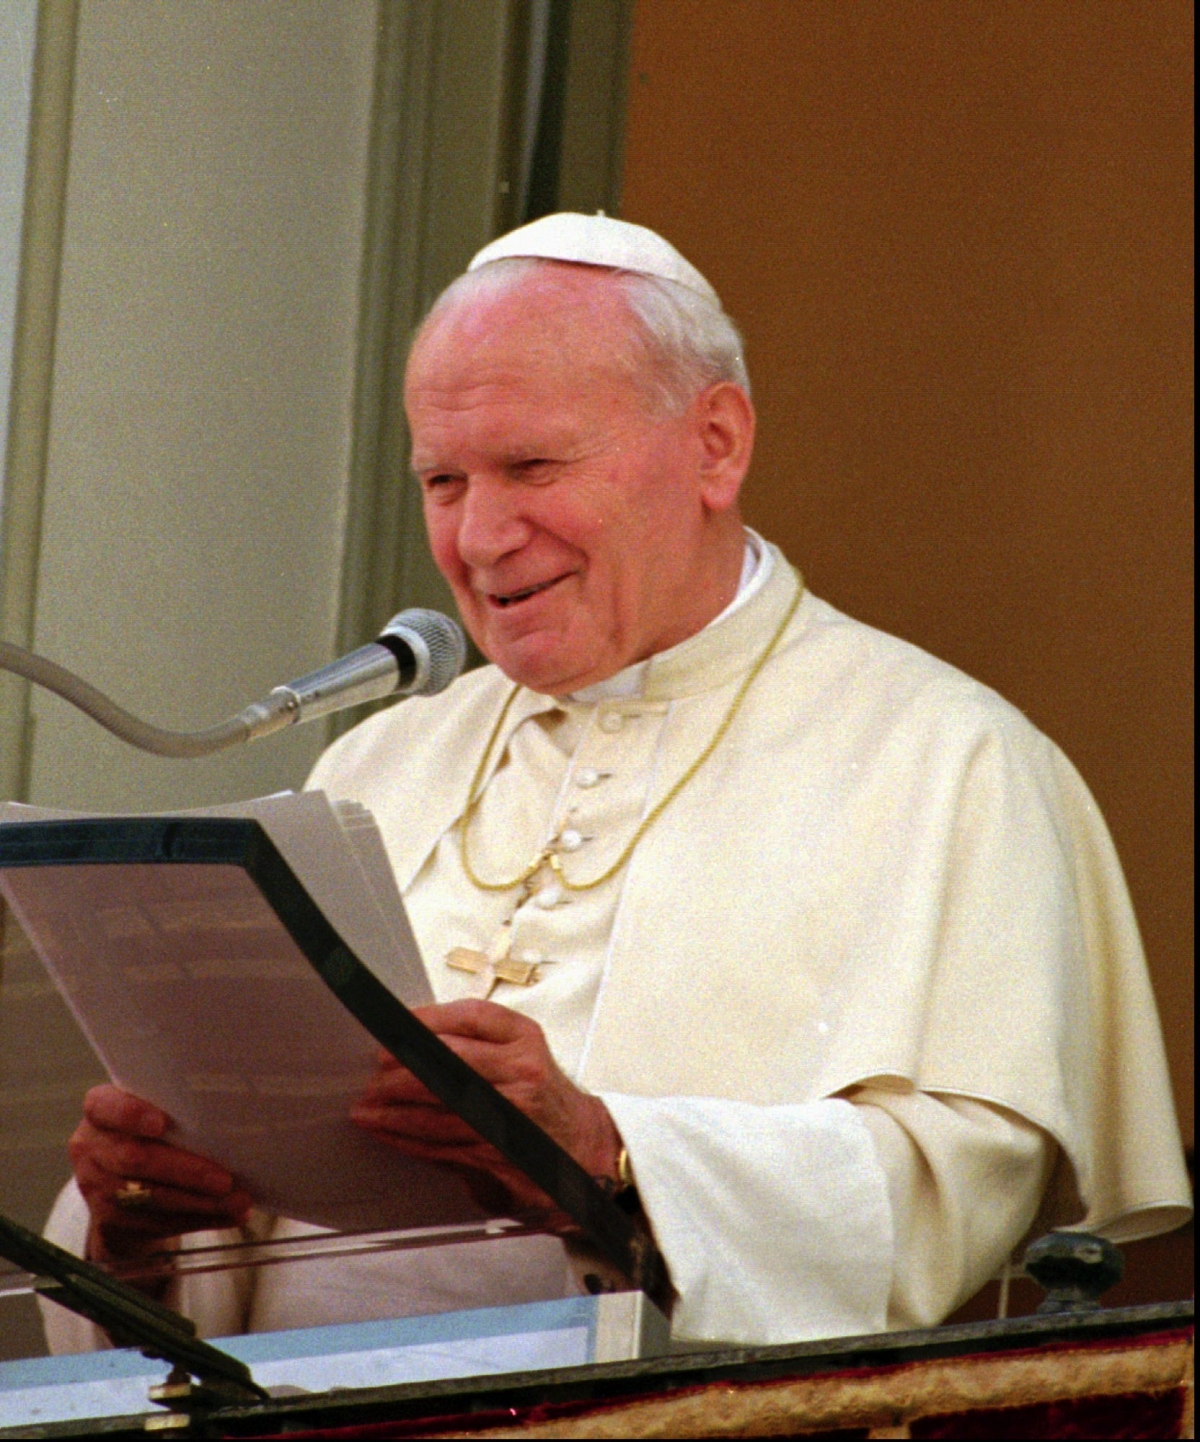 pope canonization live streaming coverage start time